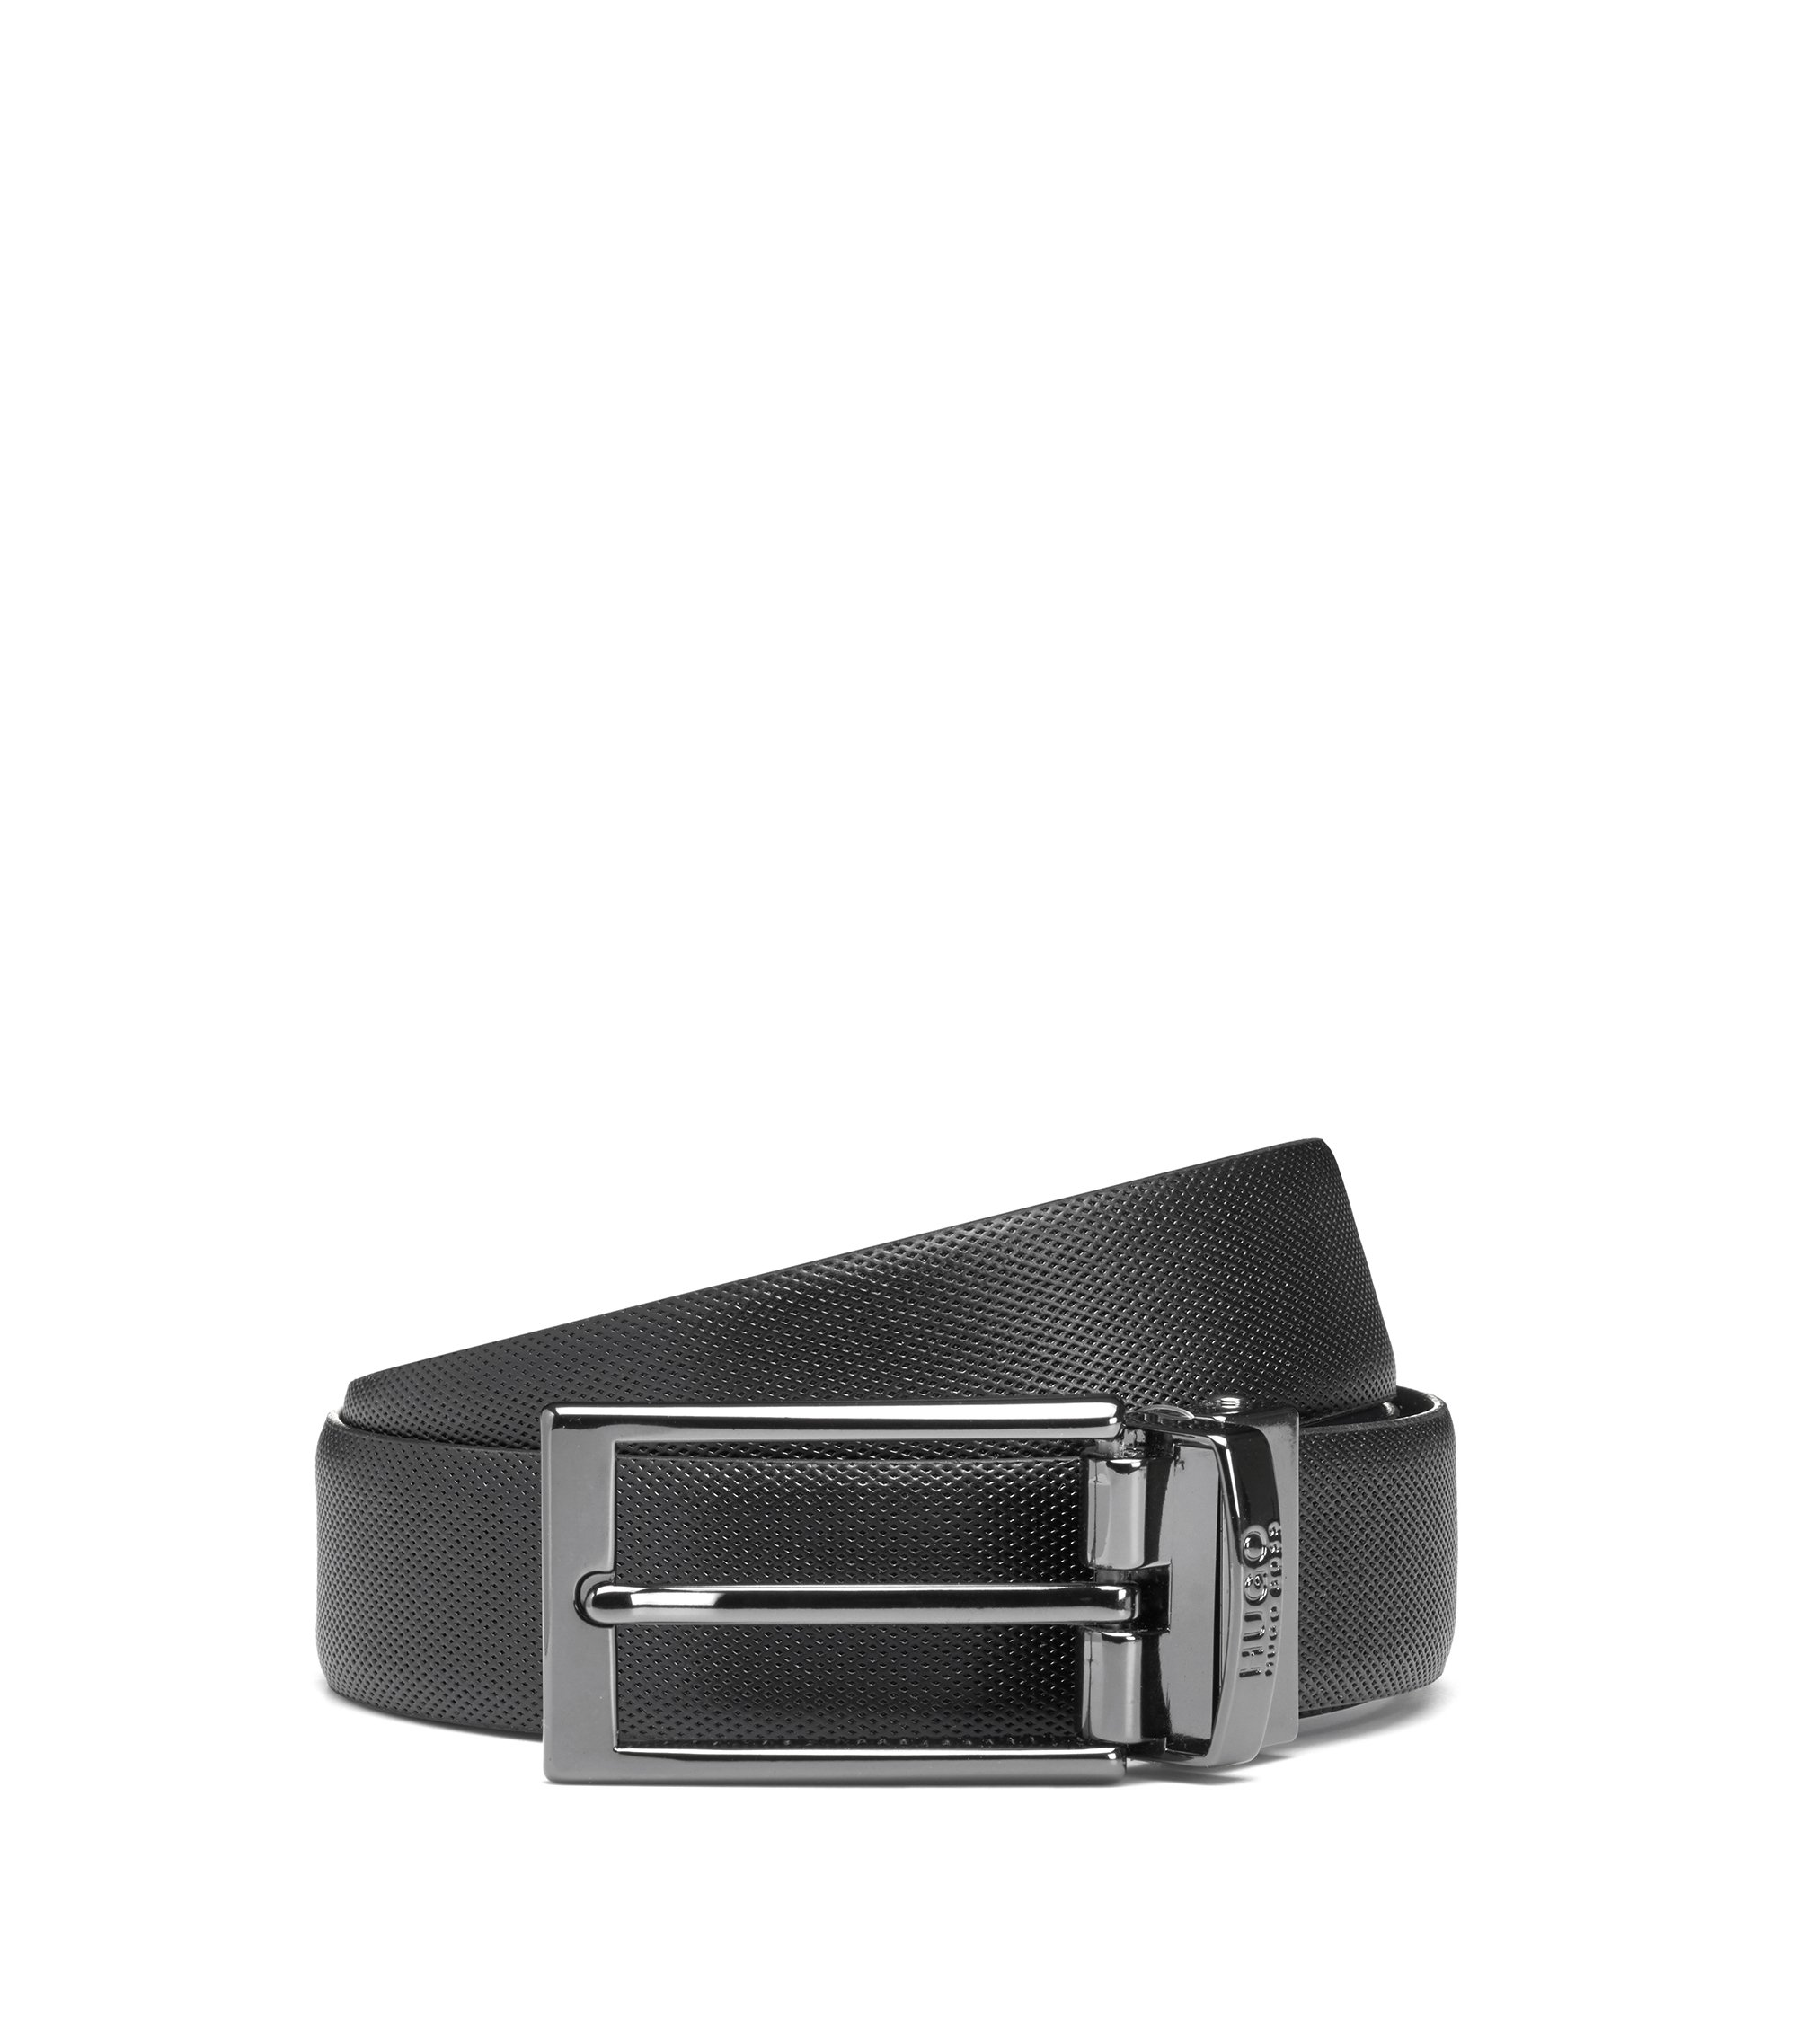 Reversible leather belt with a slimline buckle, Negro